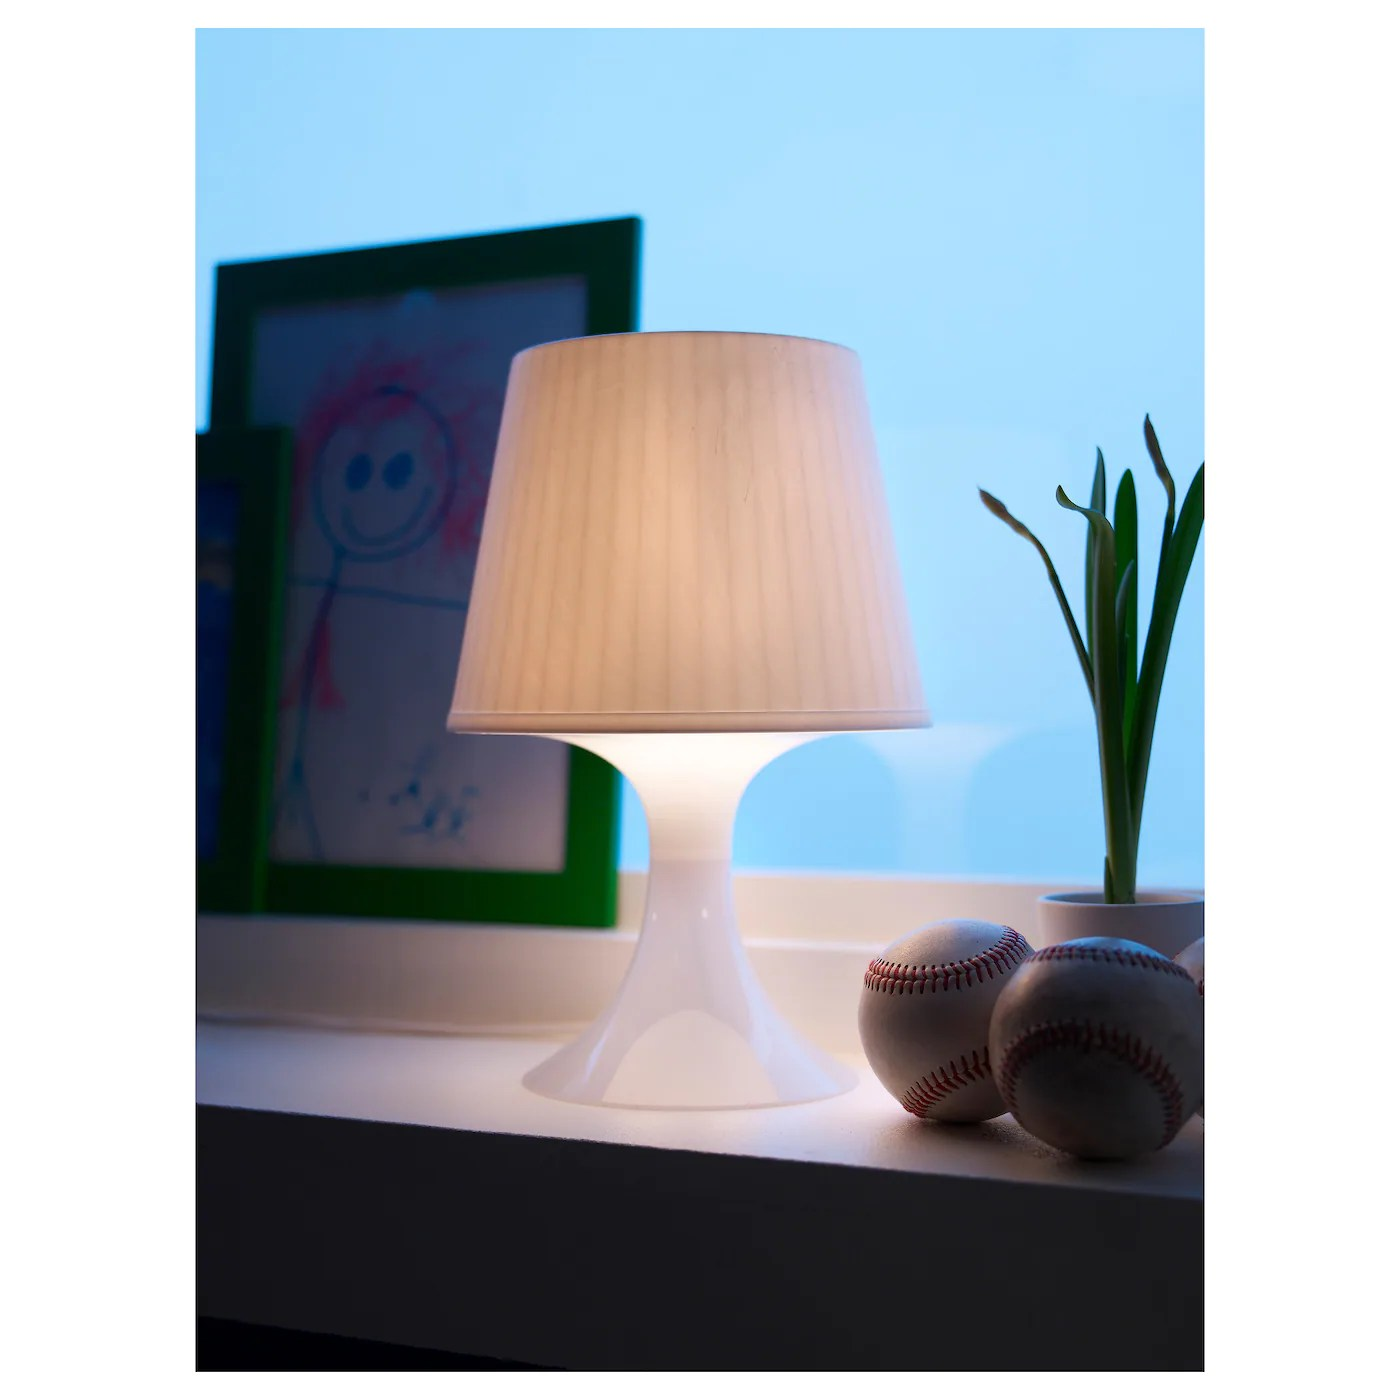 Ikea Küchensockel Ikea Lampan Silver Table Lamp Night Light Bedroom Living Shade Fabric Soft Mood